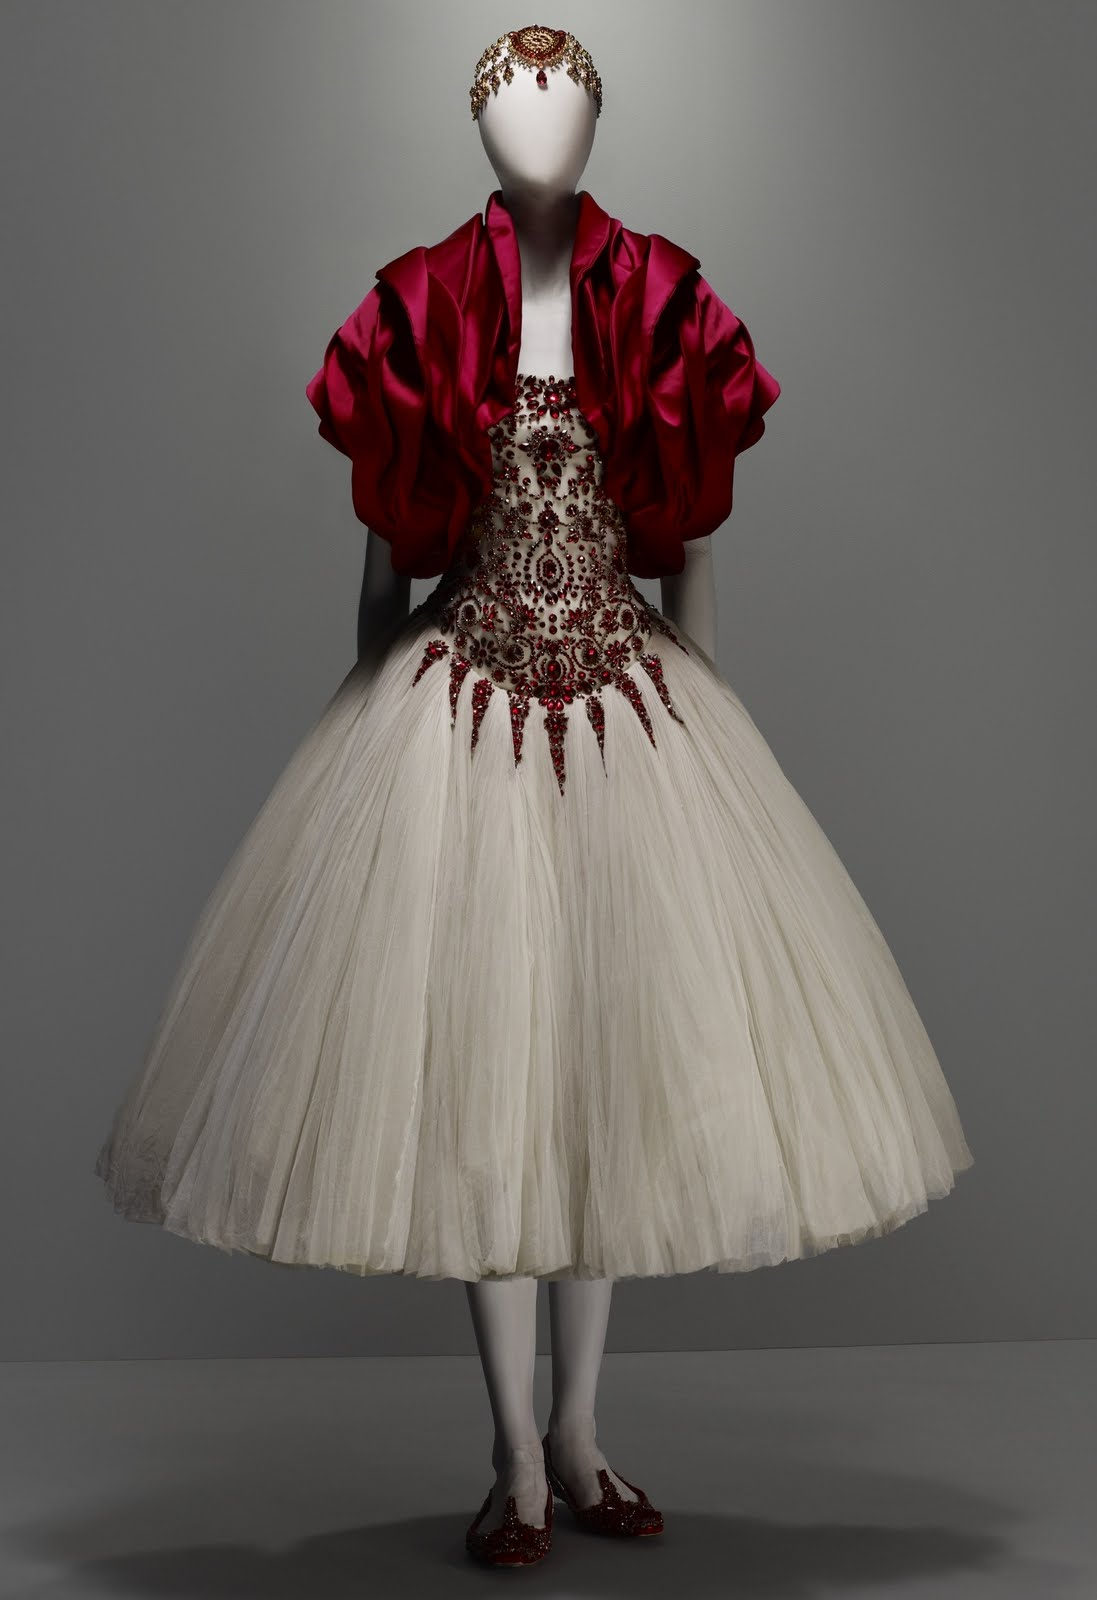 Idiosyncratic Fashionistas: Alexander McQueen: Savage Beauty